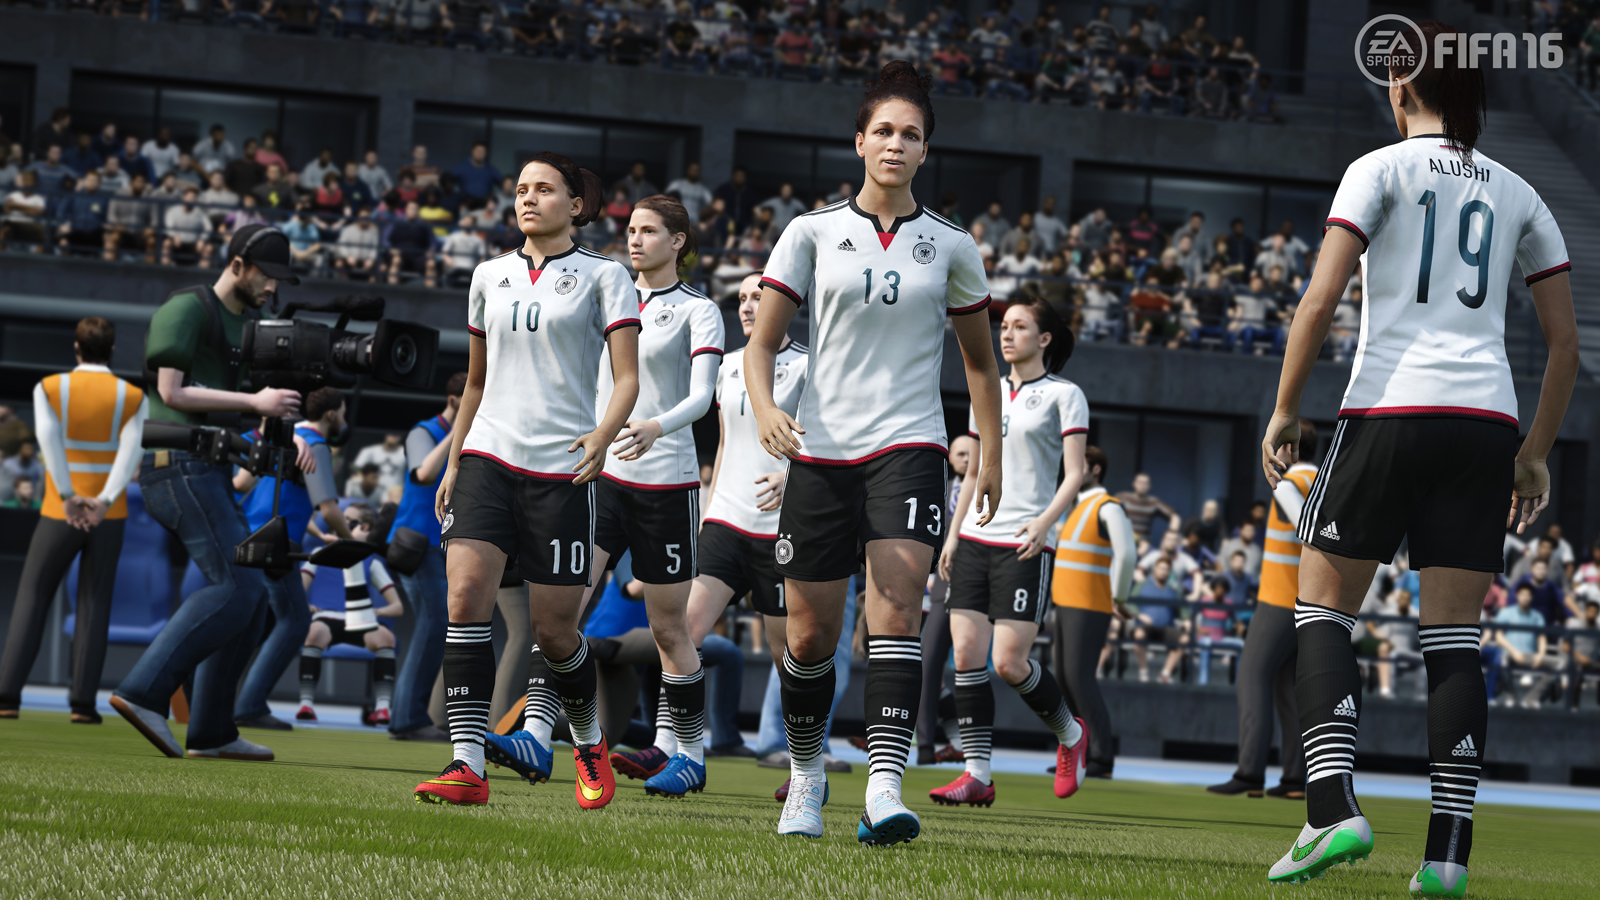 'FIFA 16' demo lets you control a women's team for the first time